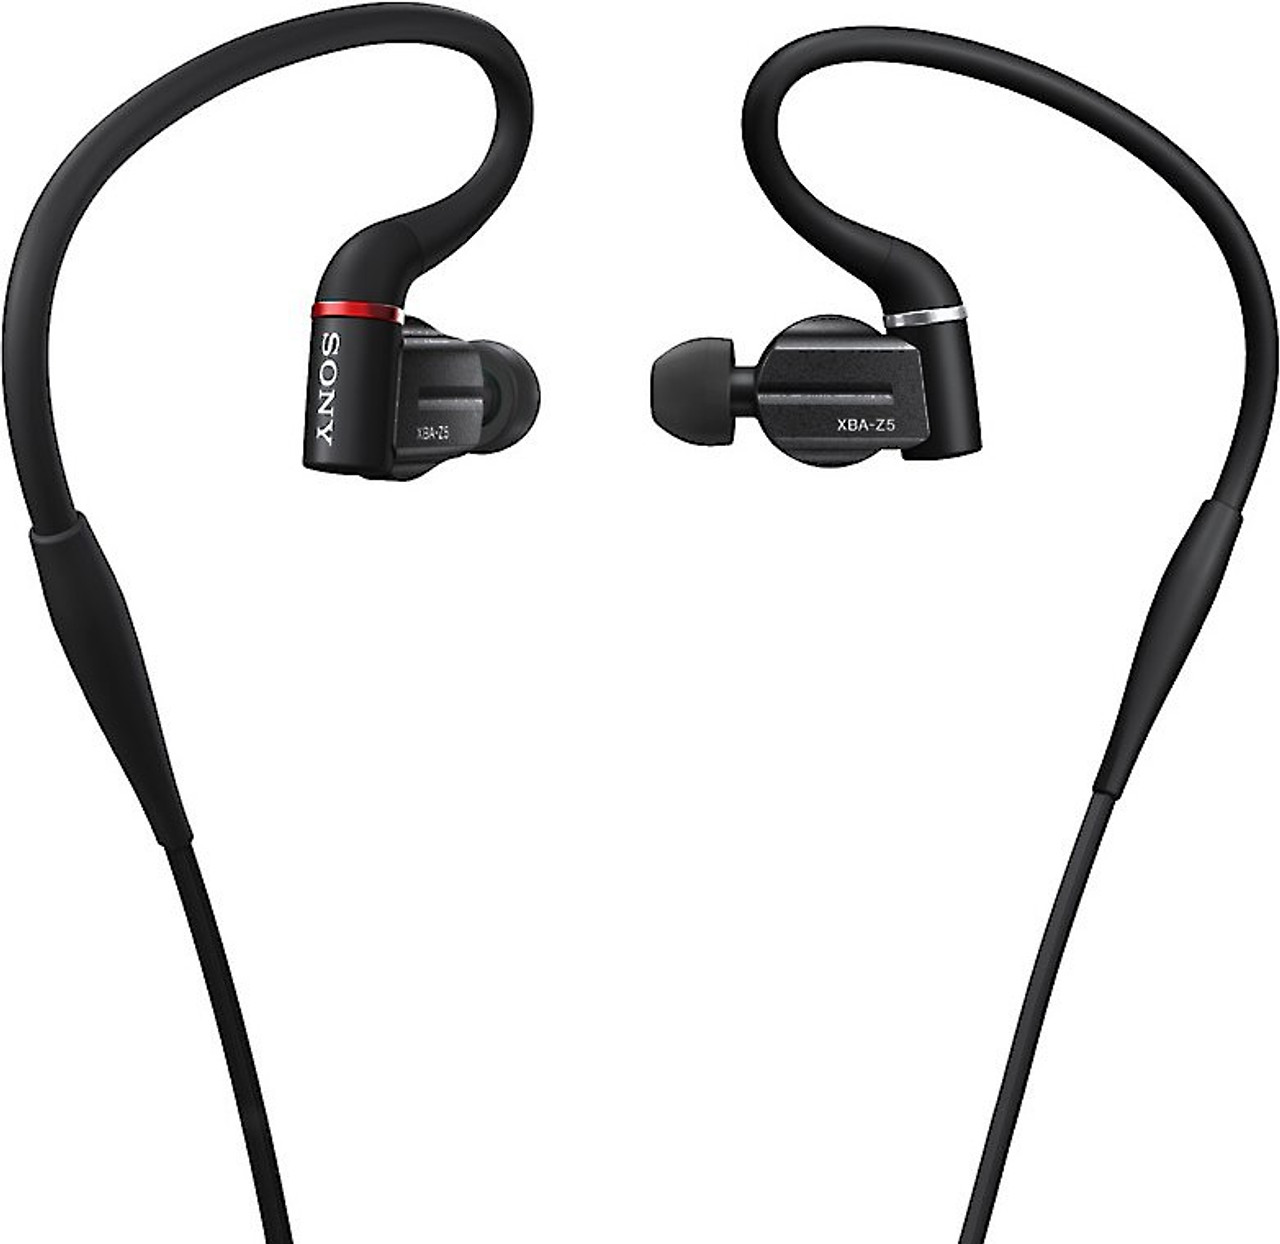 Sony XBA-Z5 In-Ear Headphones